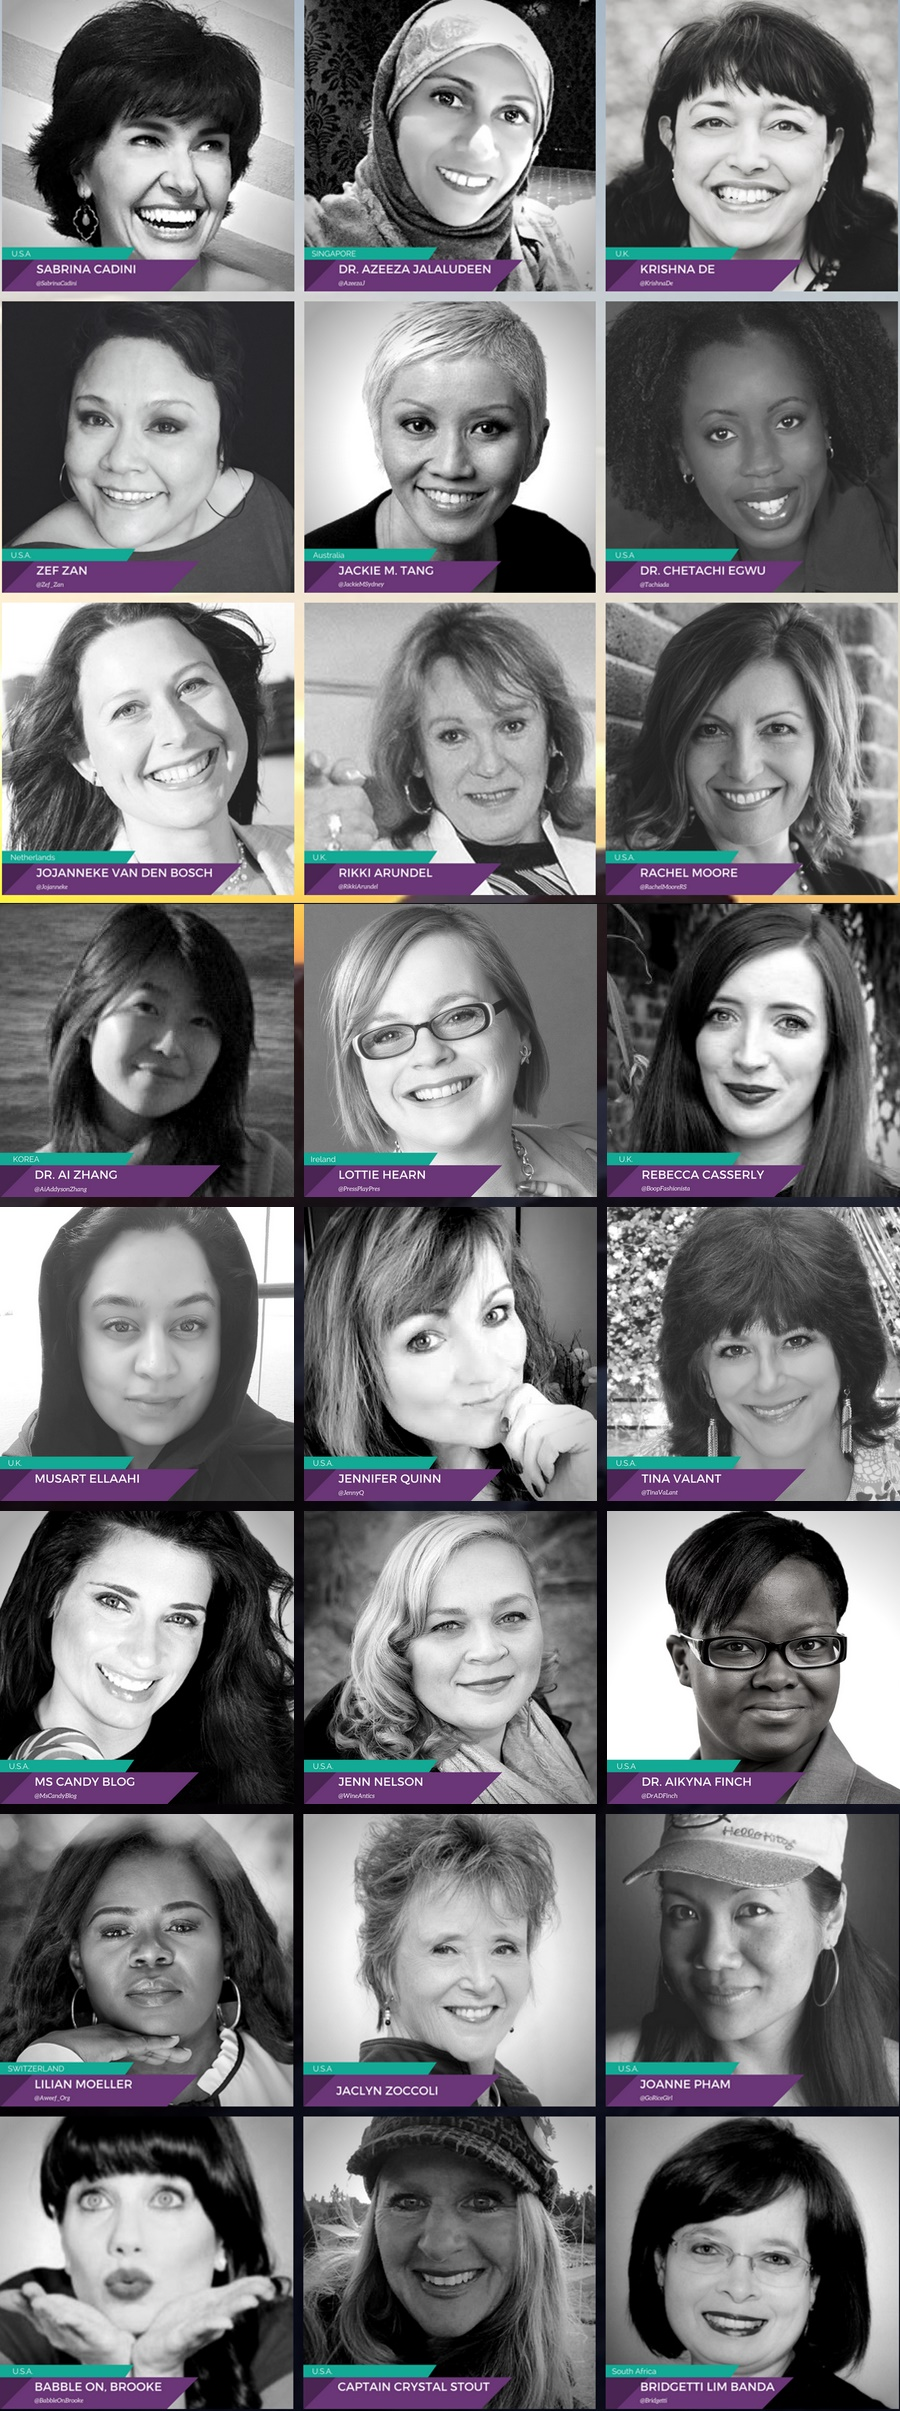 Ladies Go LIVE Virtual LIVE Summit 2017 - #LadiesGoLIVE17 - Speakers